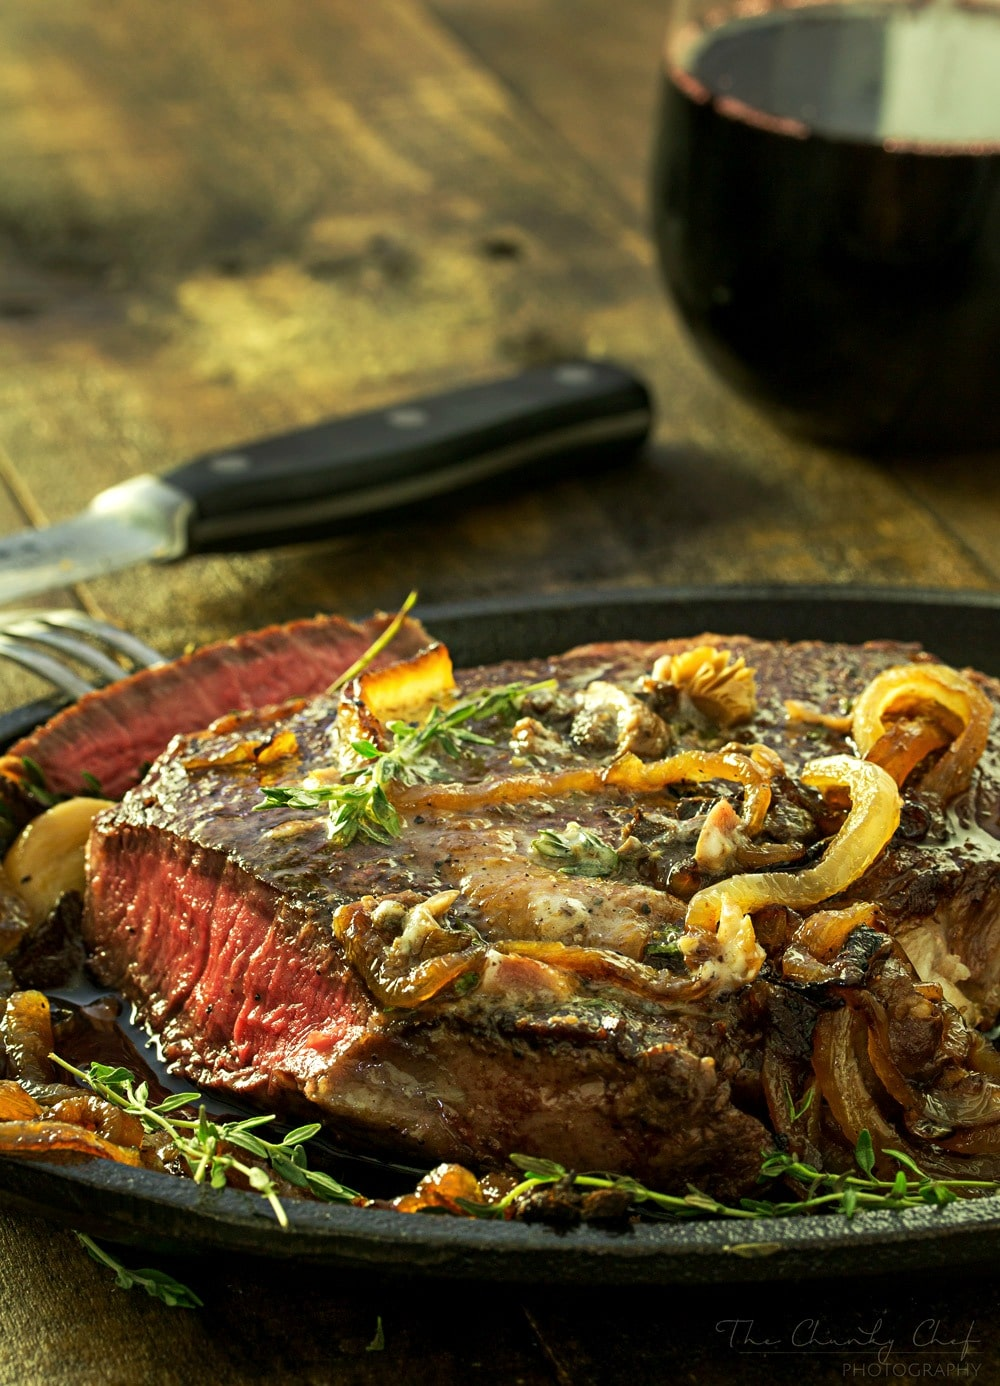 Pan Seared Steak |Tender steak is pan seared and oven roasted to juicy perfection, then topped with a porcini mushroom and herb compound butter and caramelized onions! |http://thechunkychef.com